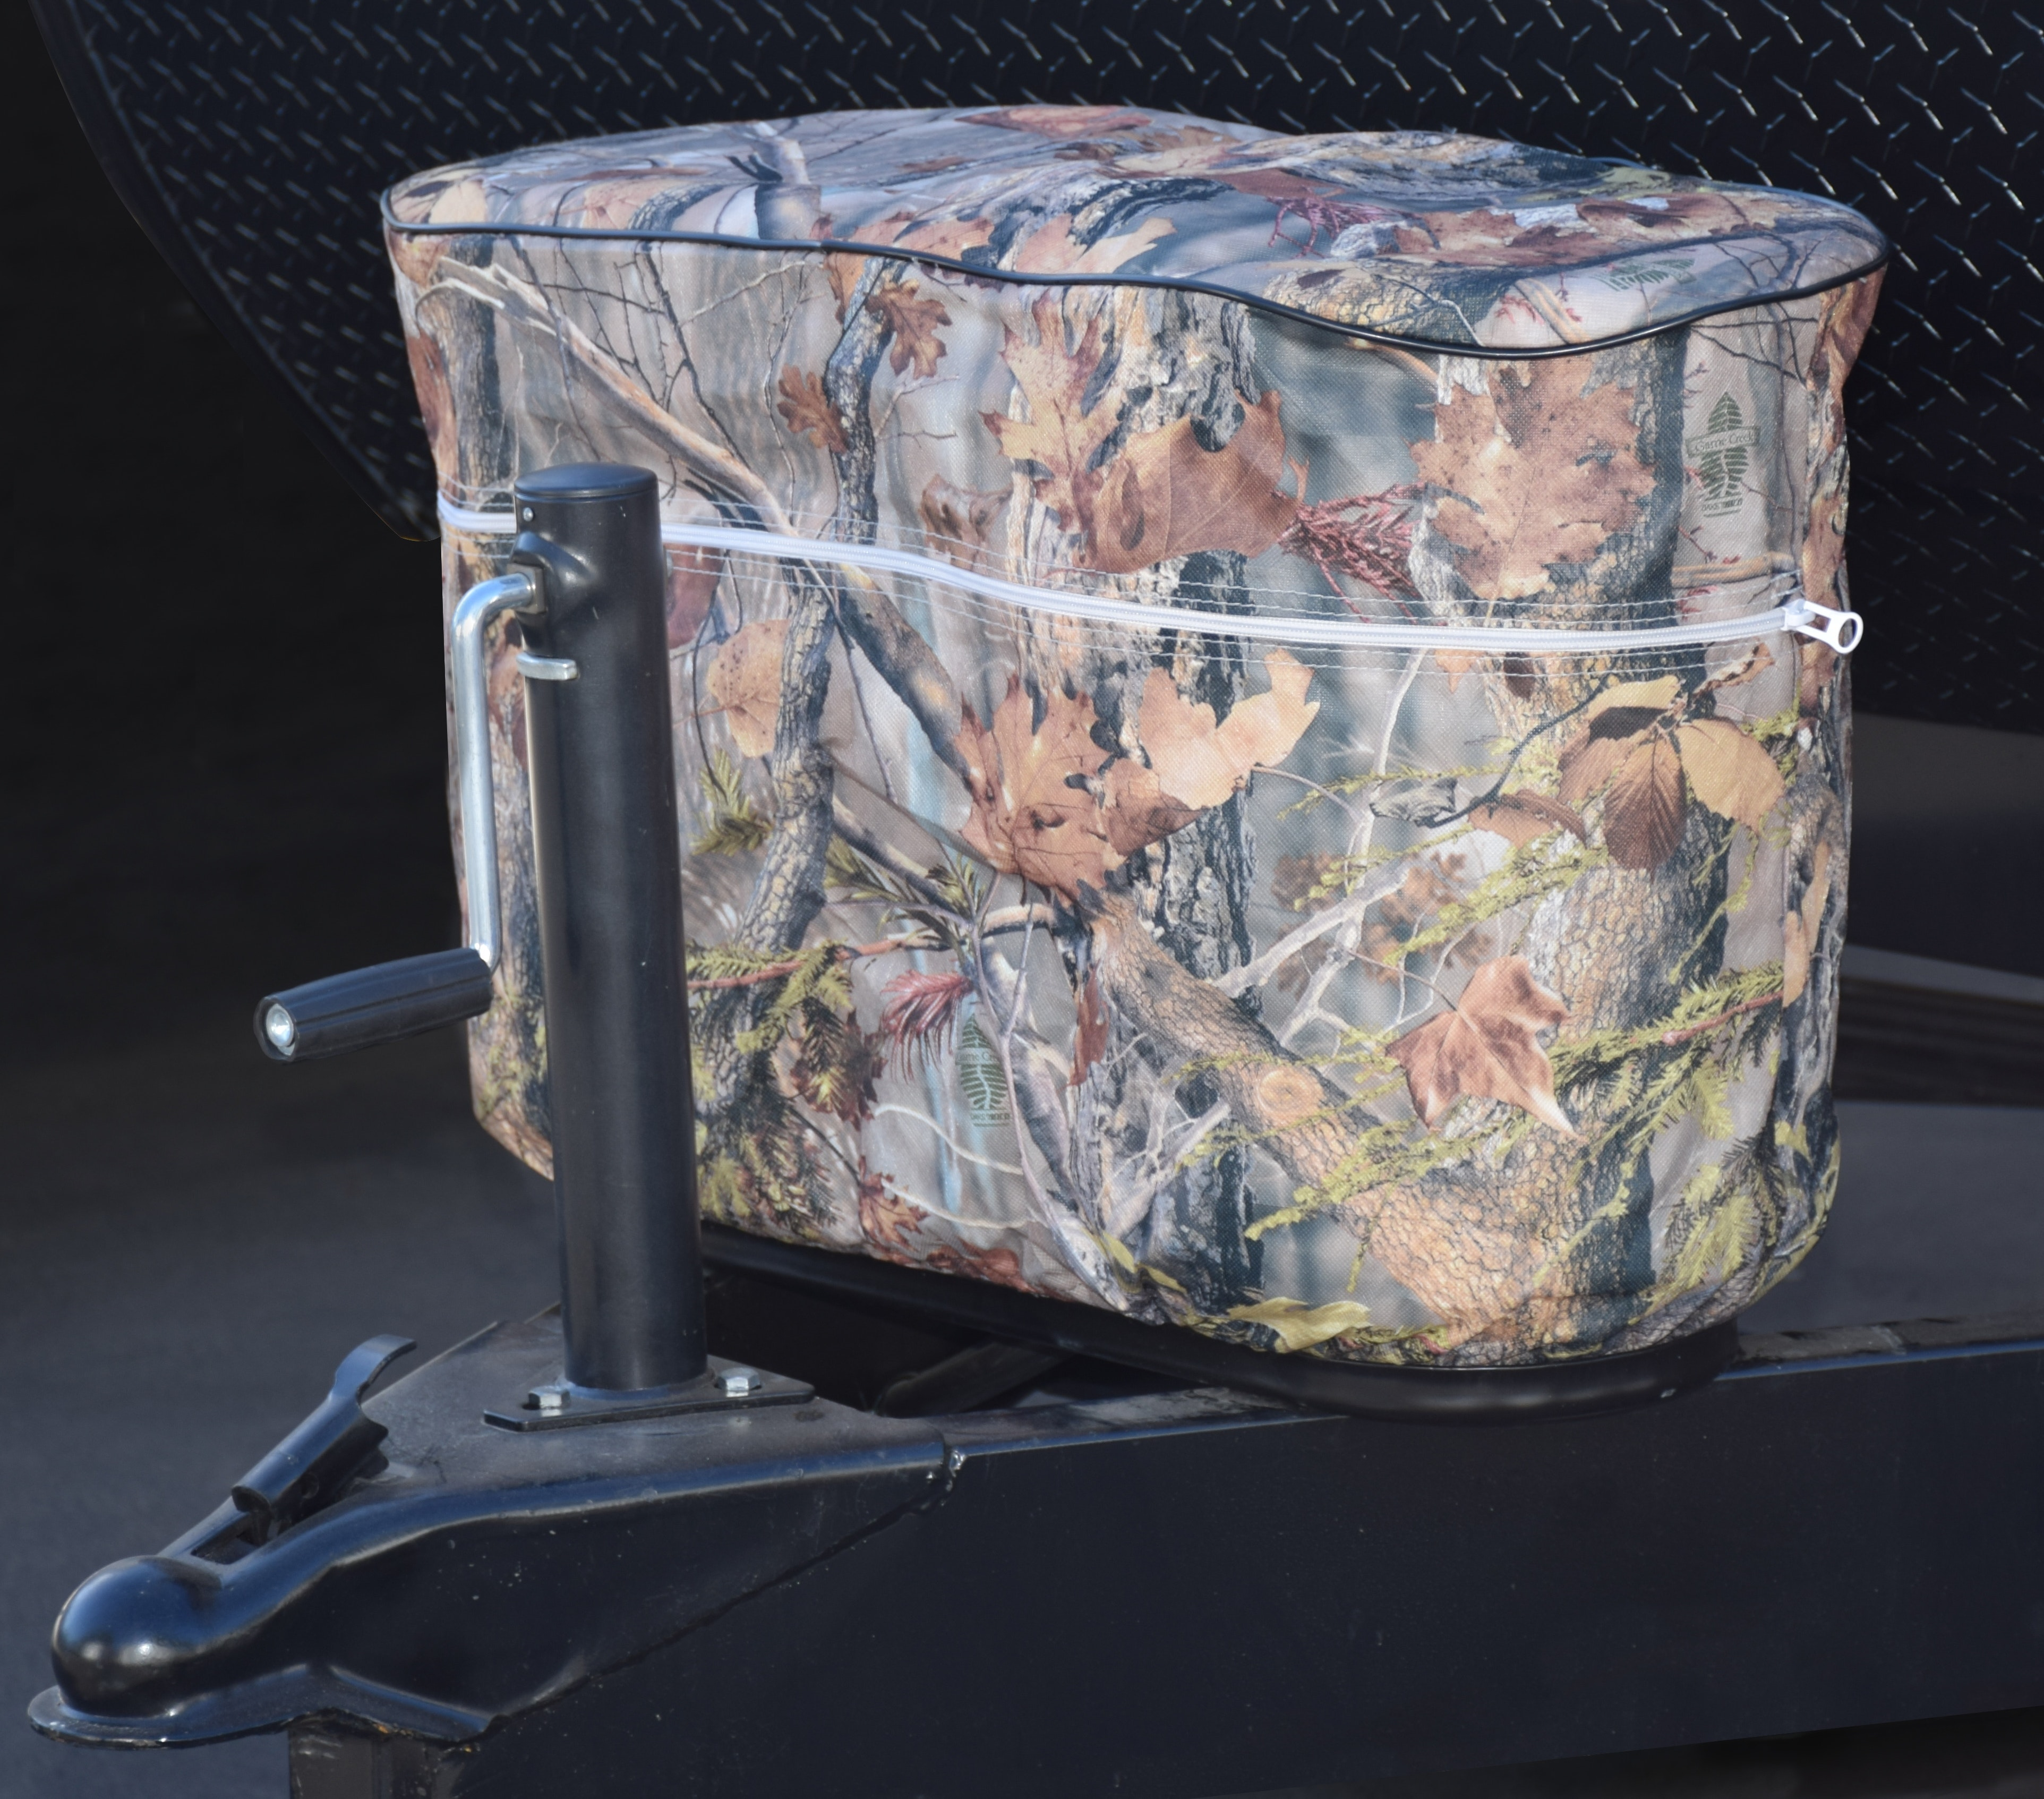 Product Image for Camouflage Propane Tank Cover for 20/5 Gallon Tank